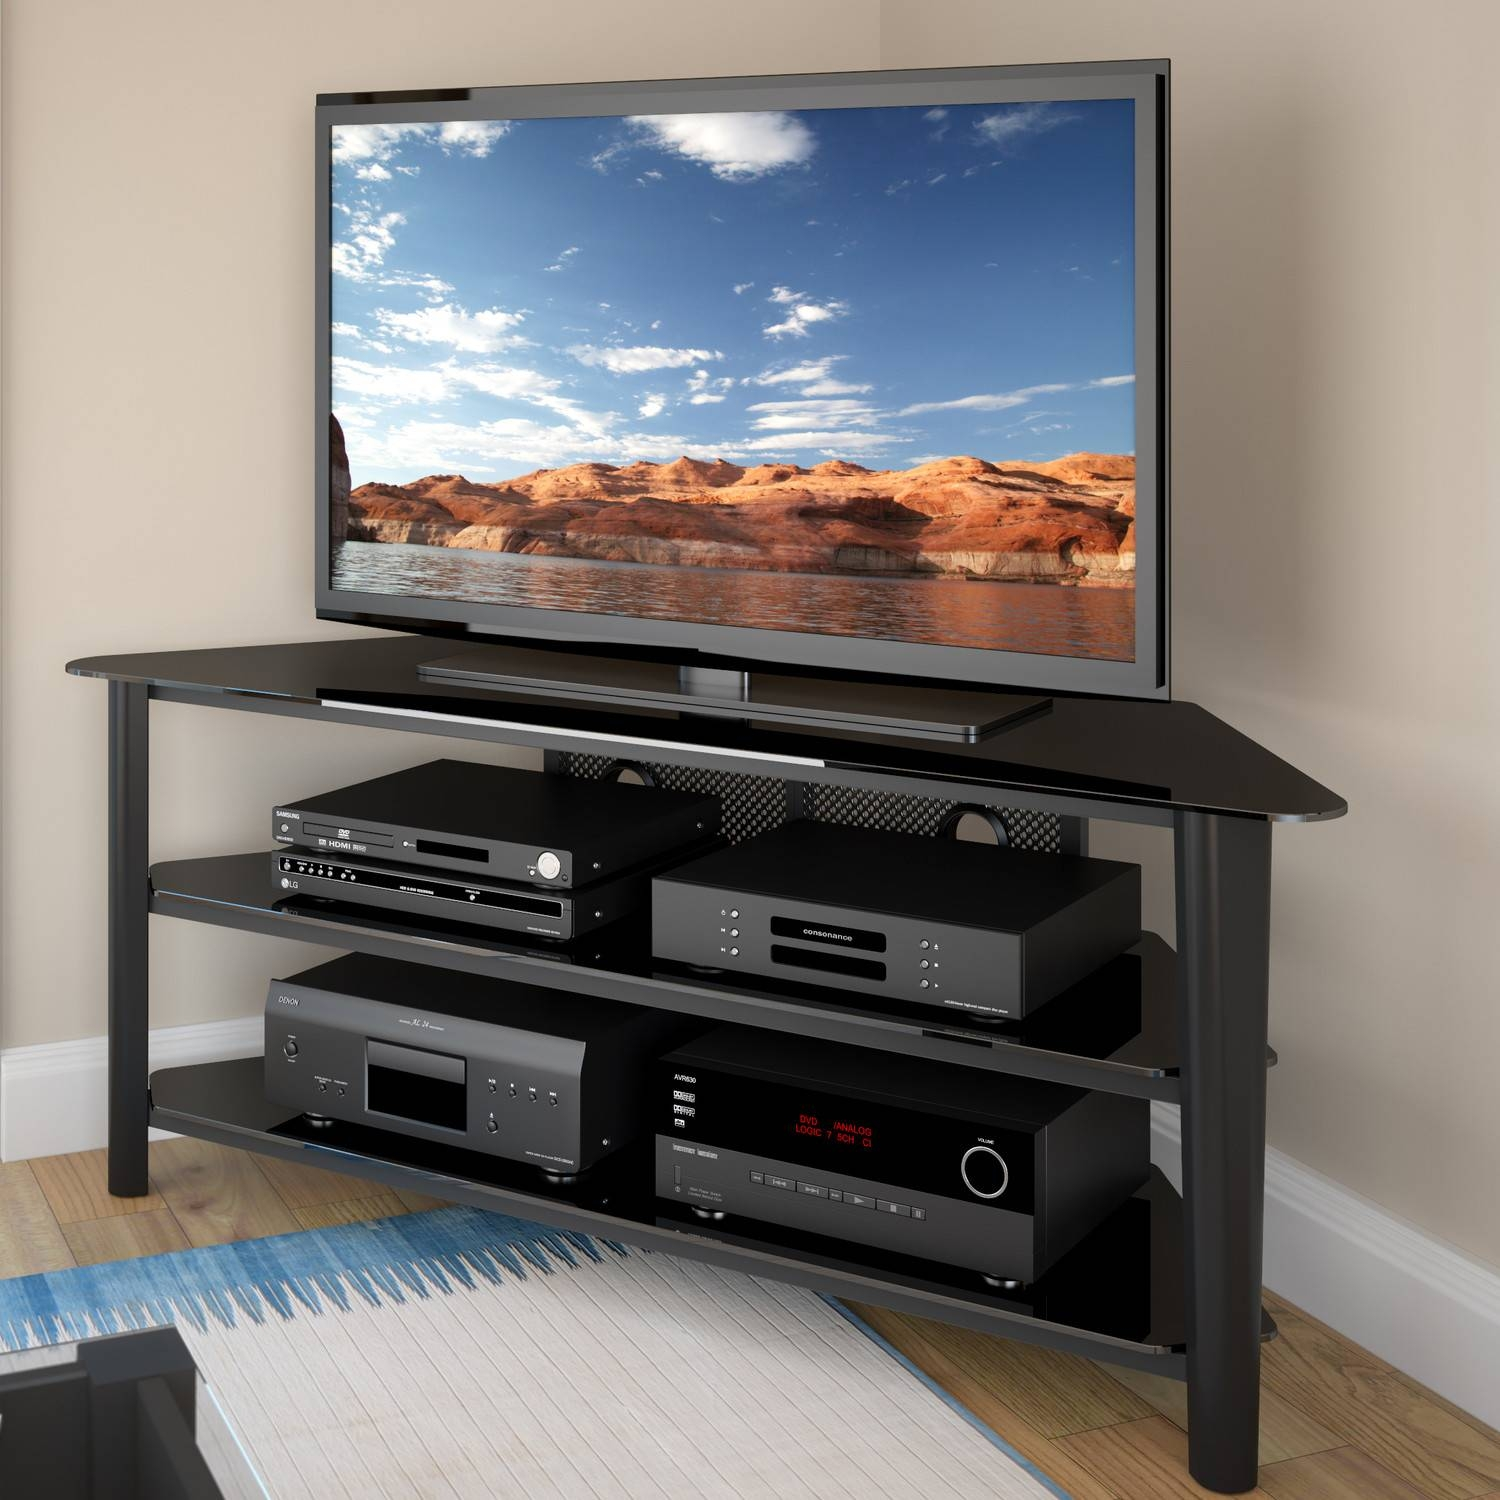 Corner Tv Stands For 60 Flat Screens - Aiyorikane for Corner Tv Stands for 60 Inch Flat Screens (Image 6 of 15)